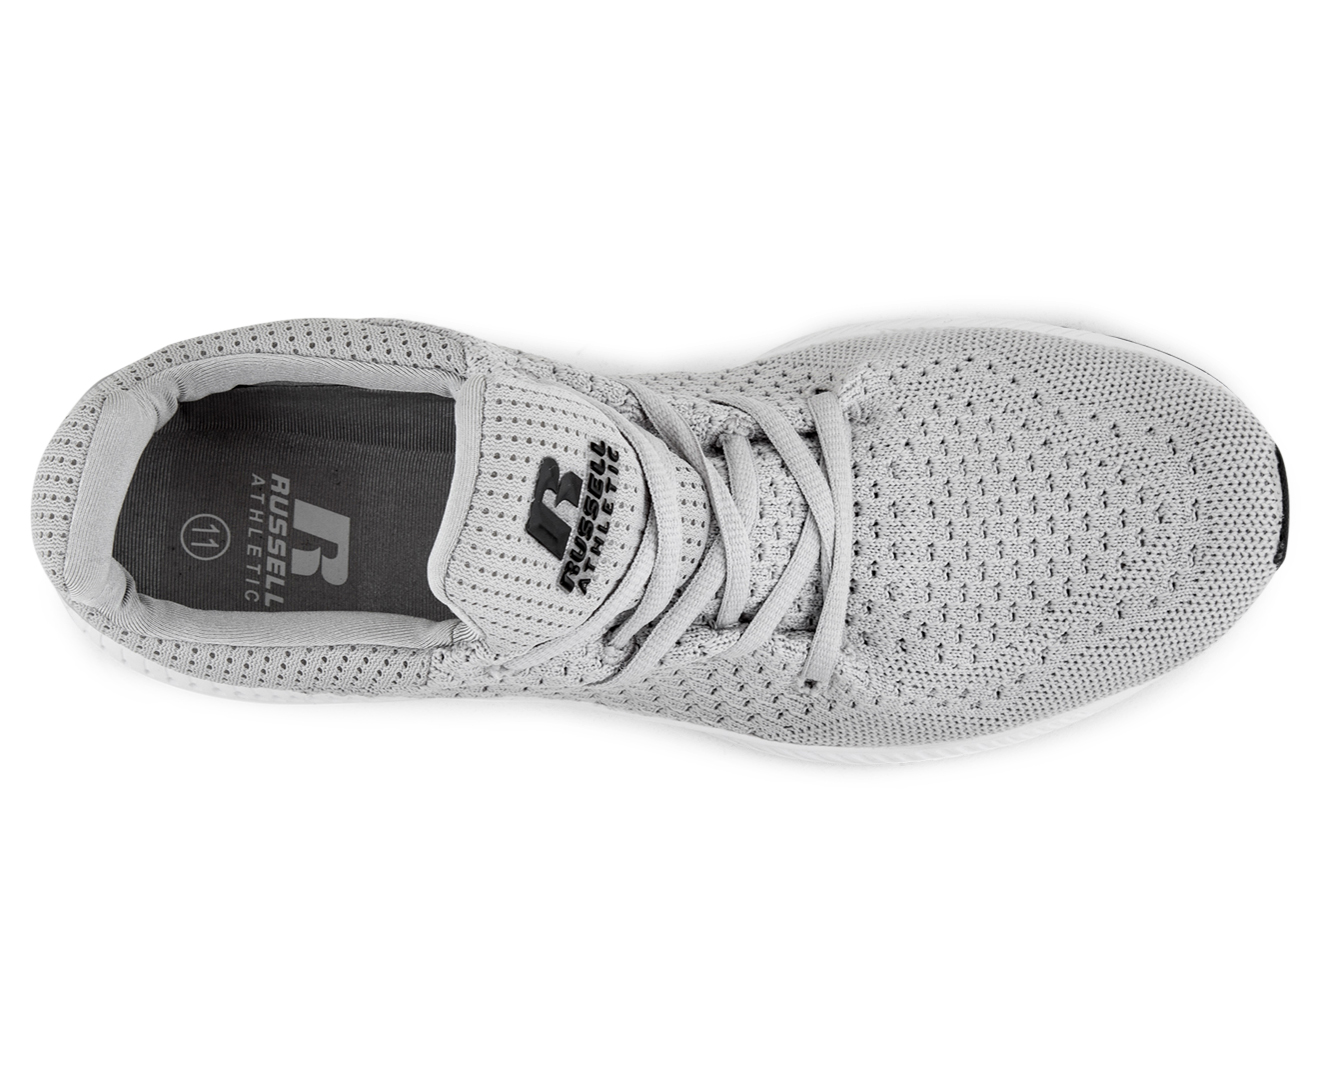 Russell Athletic Men's Zero Training Shoe - Grey/Black | Great daily deals  at Australia's favourite superstore | Catch.com.au